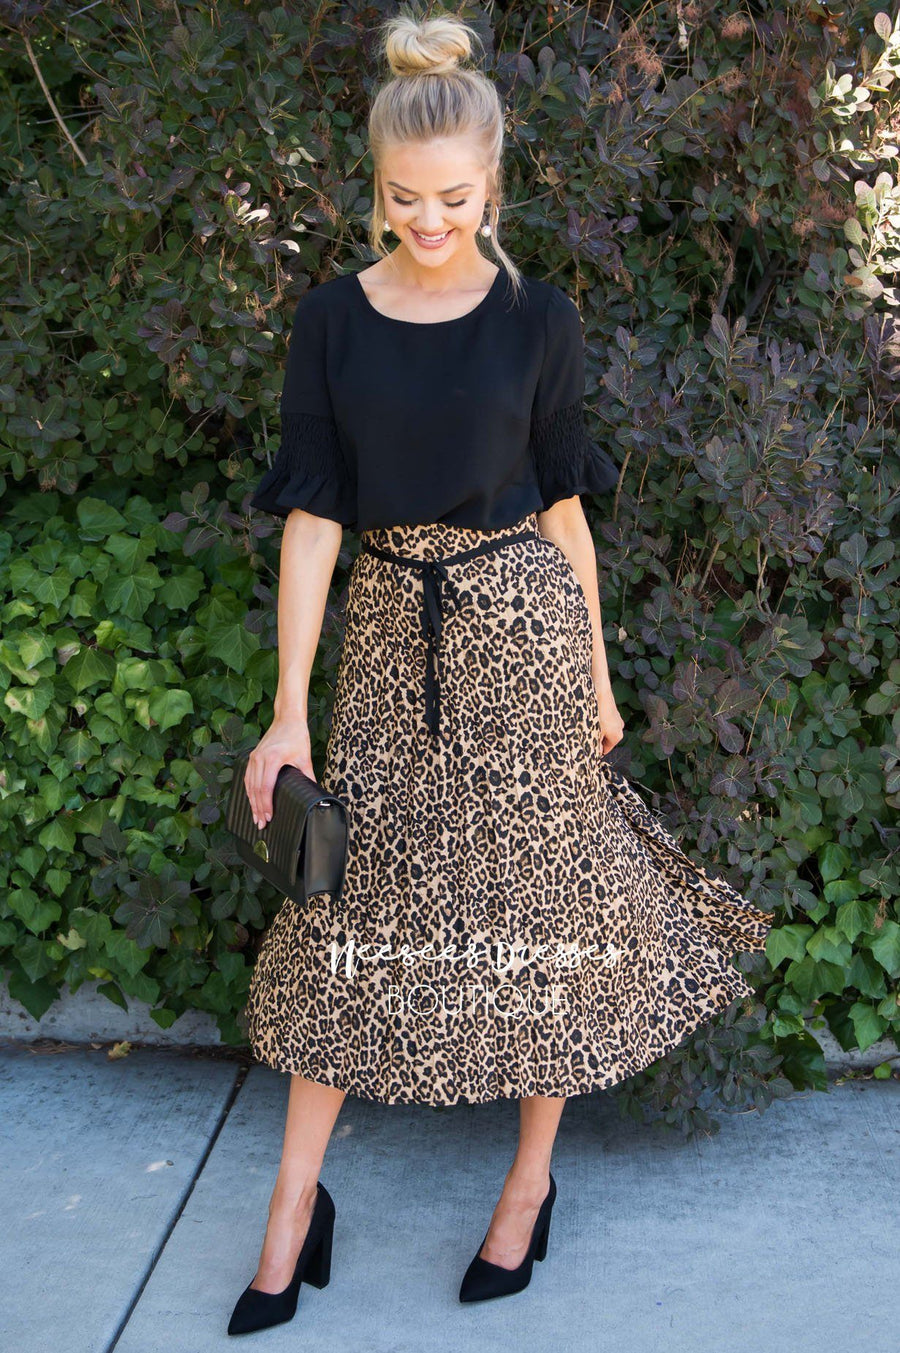 Lovely in Leopard Skirt